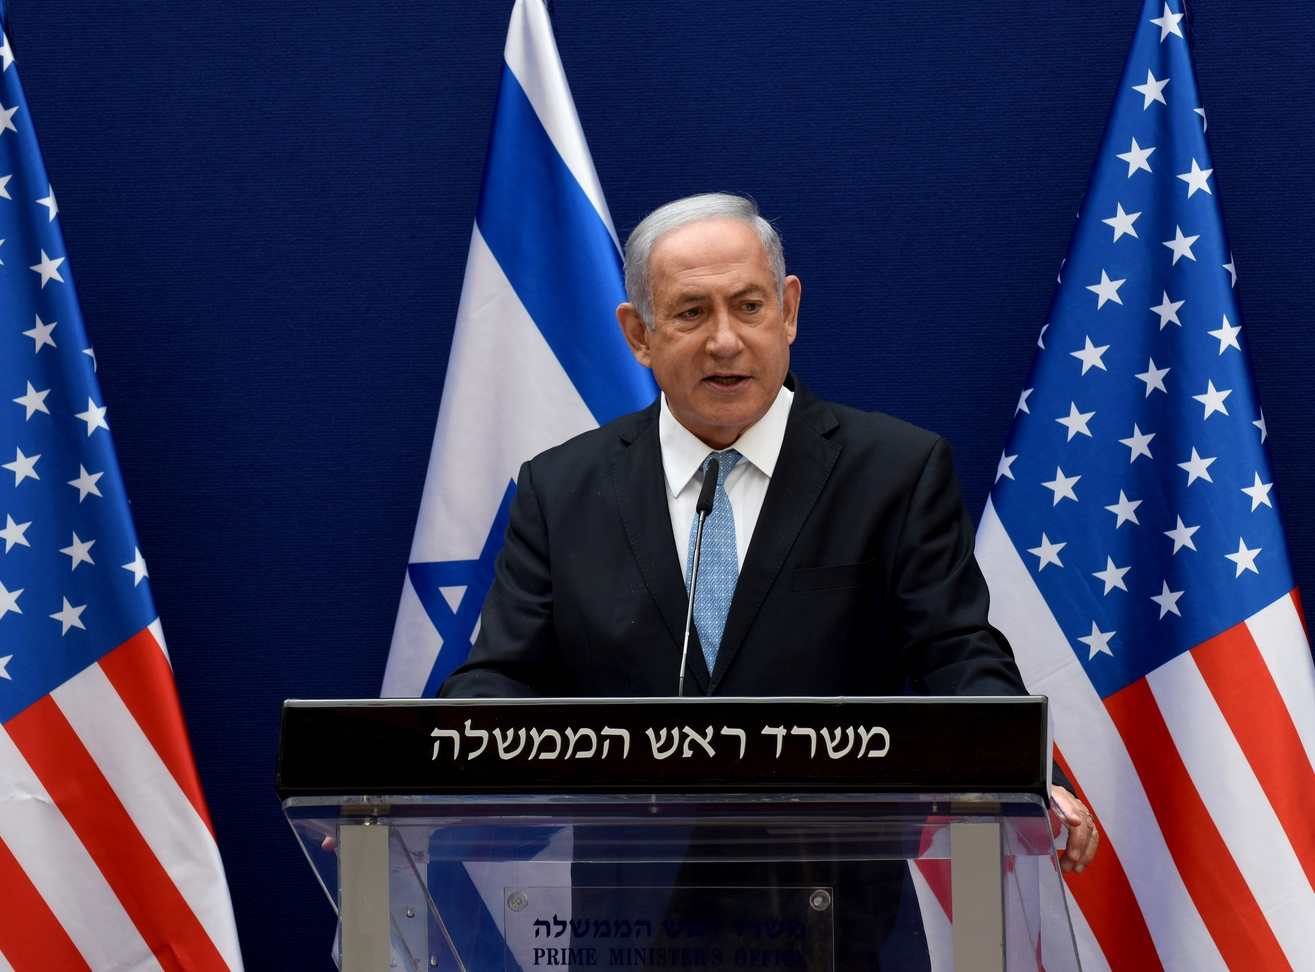 Netanyahu gets one more — perhaps last — gift from Trump